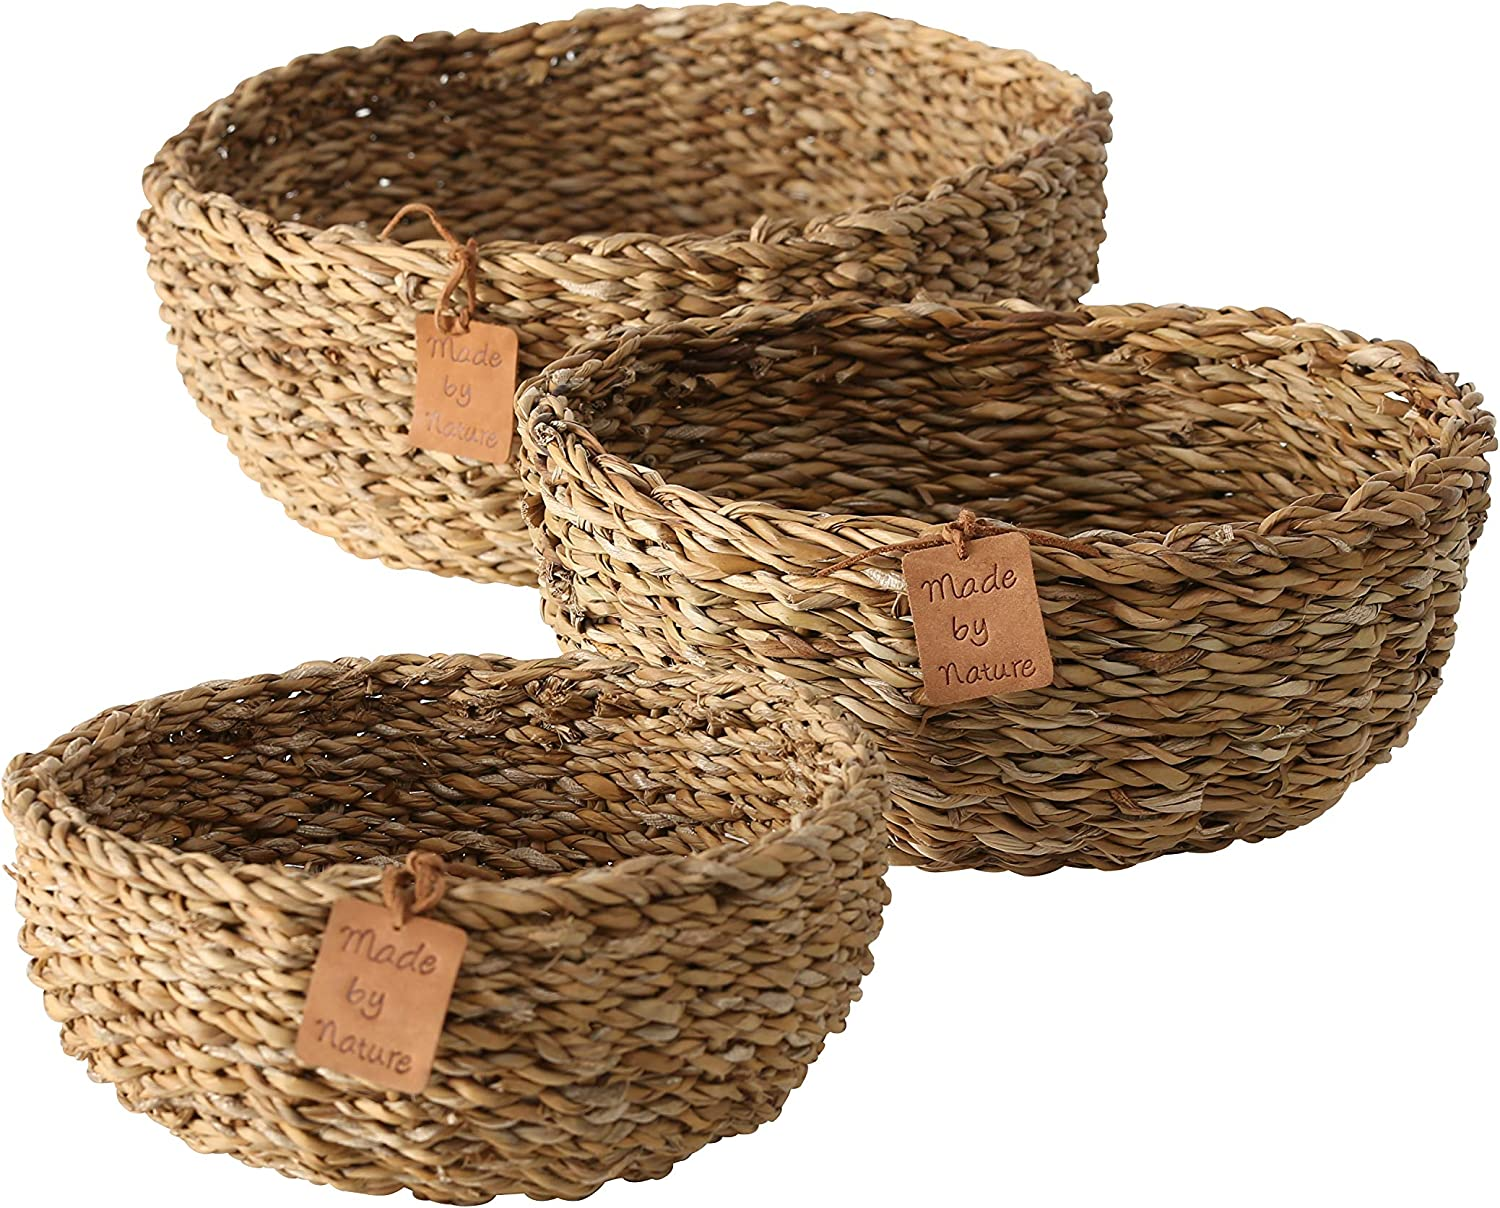 Made by Nature Beach House Bowls, Set of 3, 8, 10 and 12 Inches in Diameter (20, 25, 30 cm) Woven Sea Grass